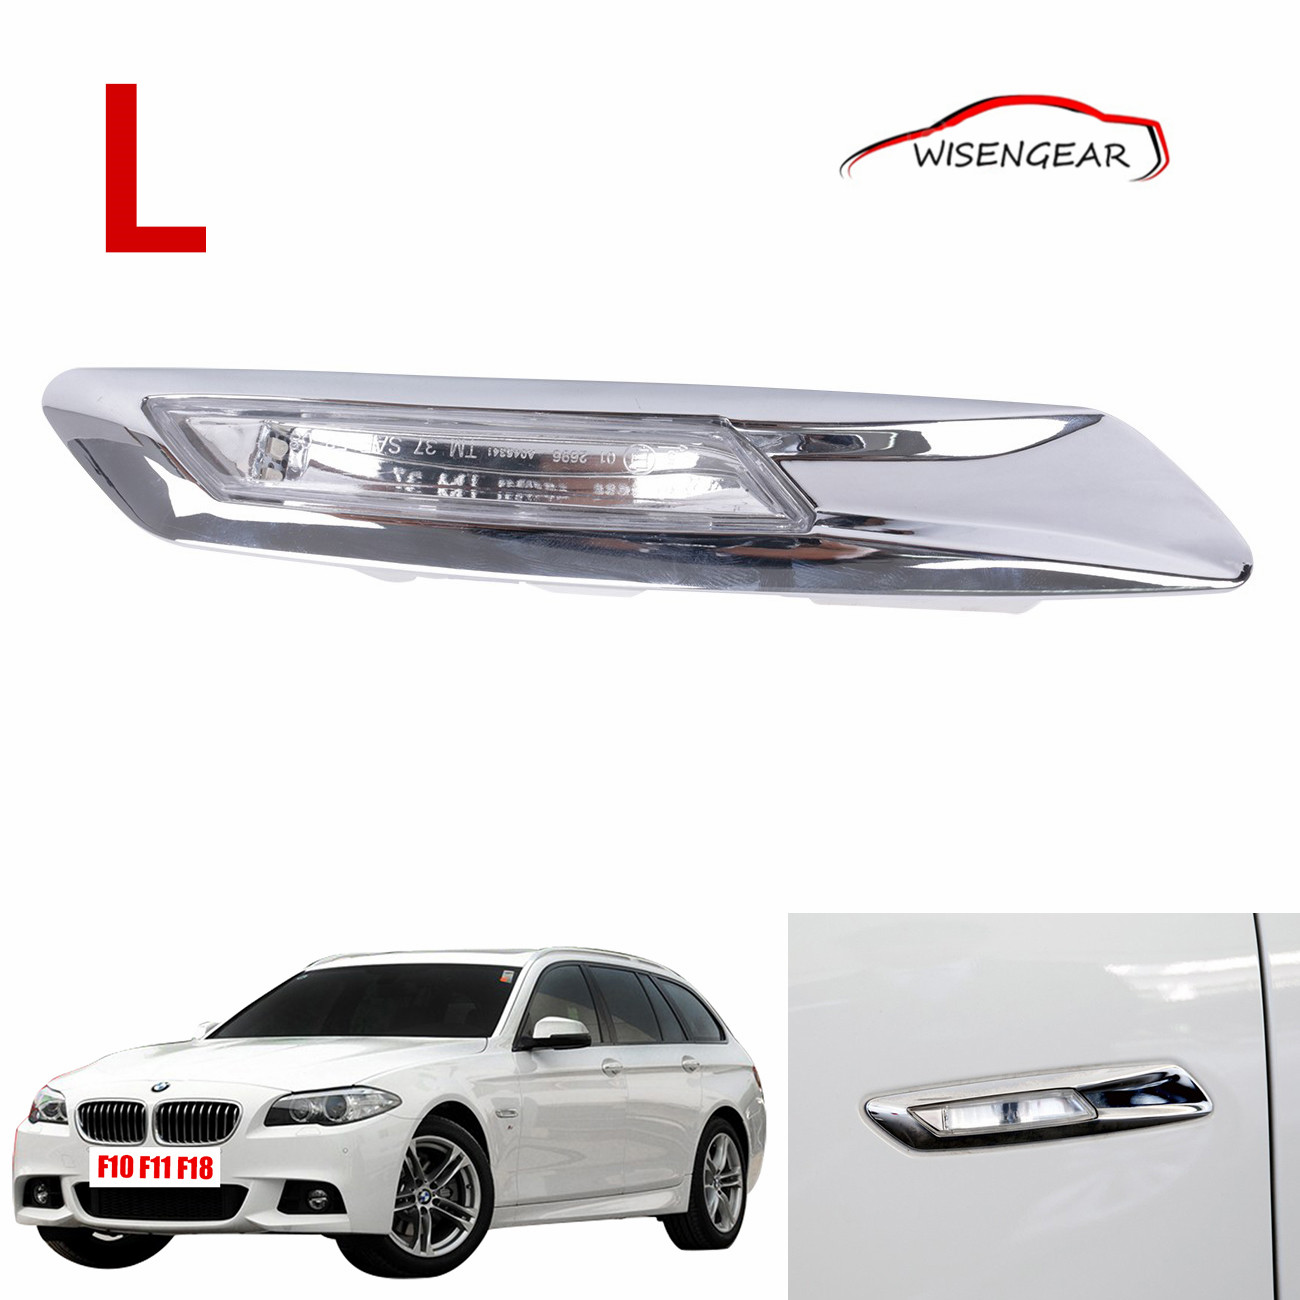 Left Chrome LED Side Turn Signal Light For BMW F10 F11 F18 5 series 550i 535i 528i M5 2011 - 2015 Replay 3137154167 C/5 free shipping 2x led turn signal side light auto parts led side marker car accessories with m logo for bmw e46 02 05 4d 5d